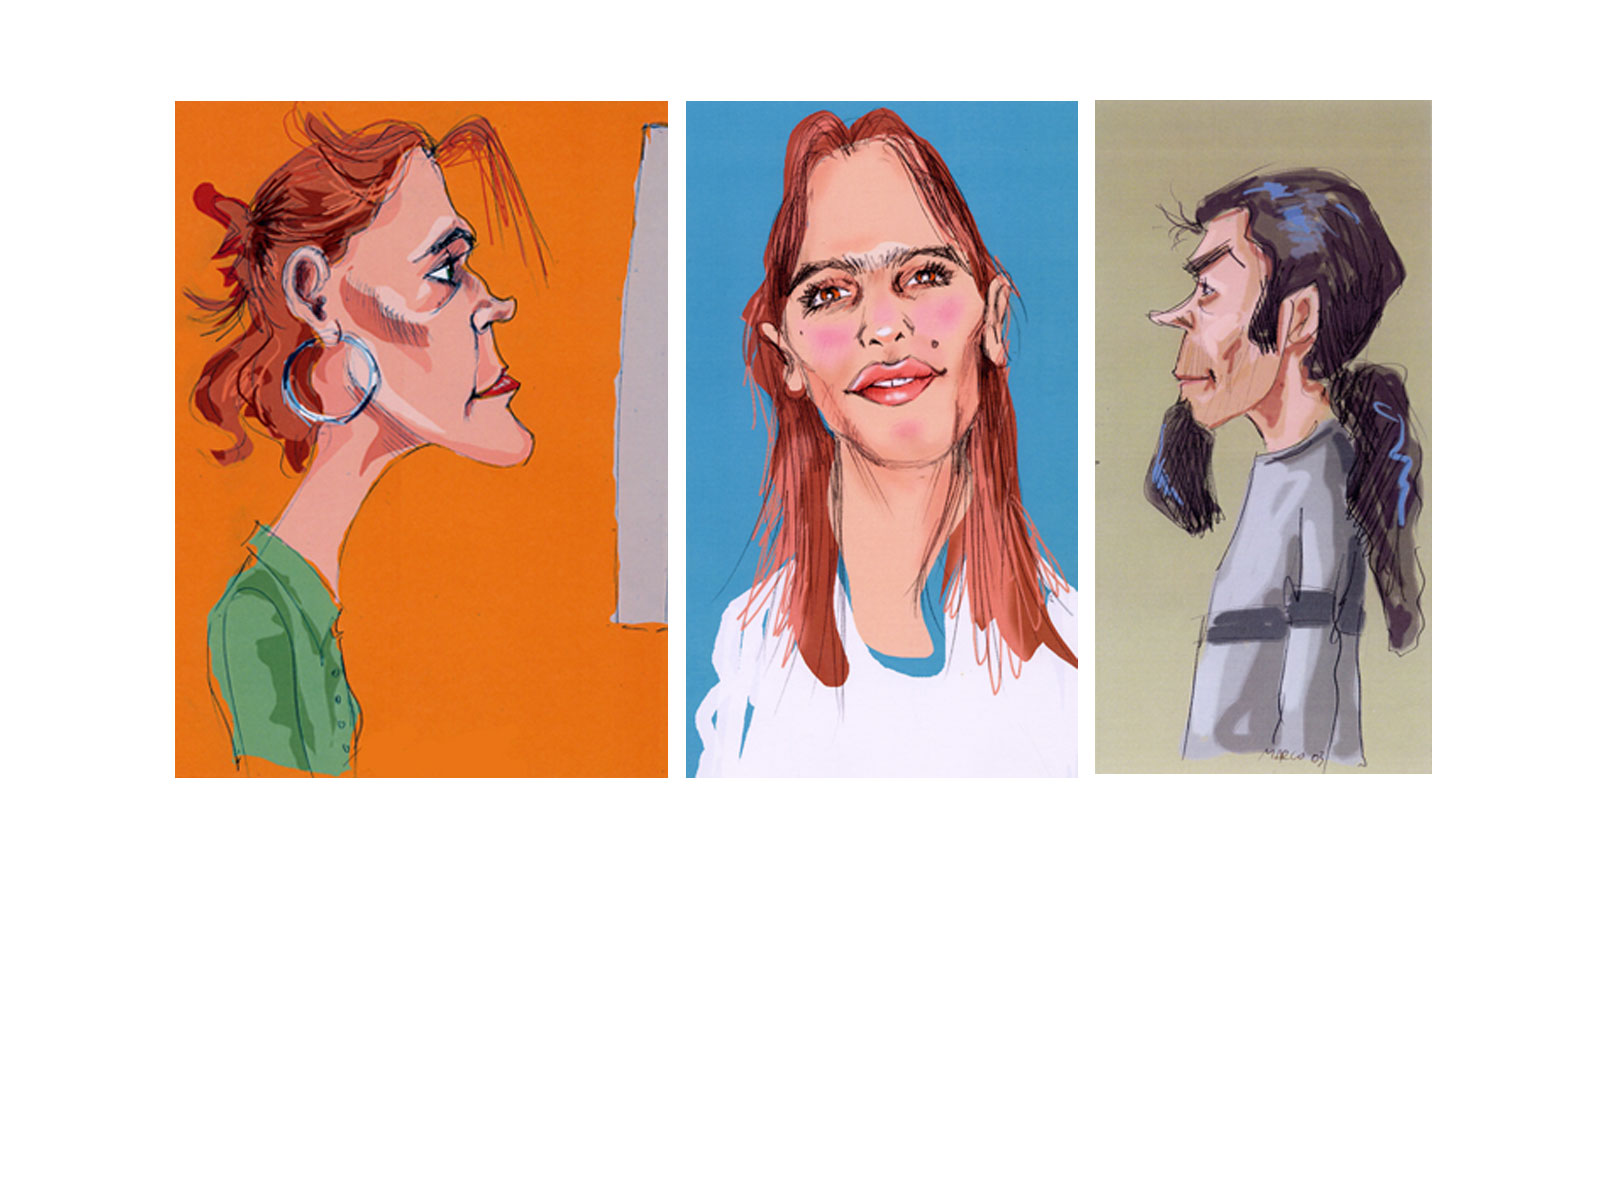 INGRANDMarc-Illustrations-CARICATURES-PORTRAITS-2470